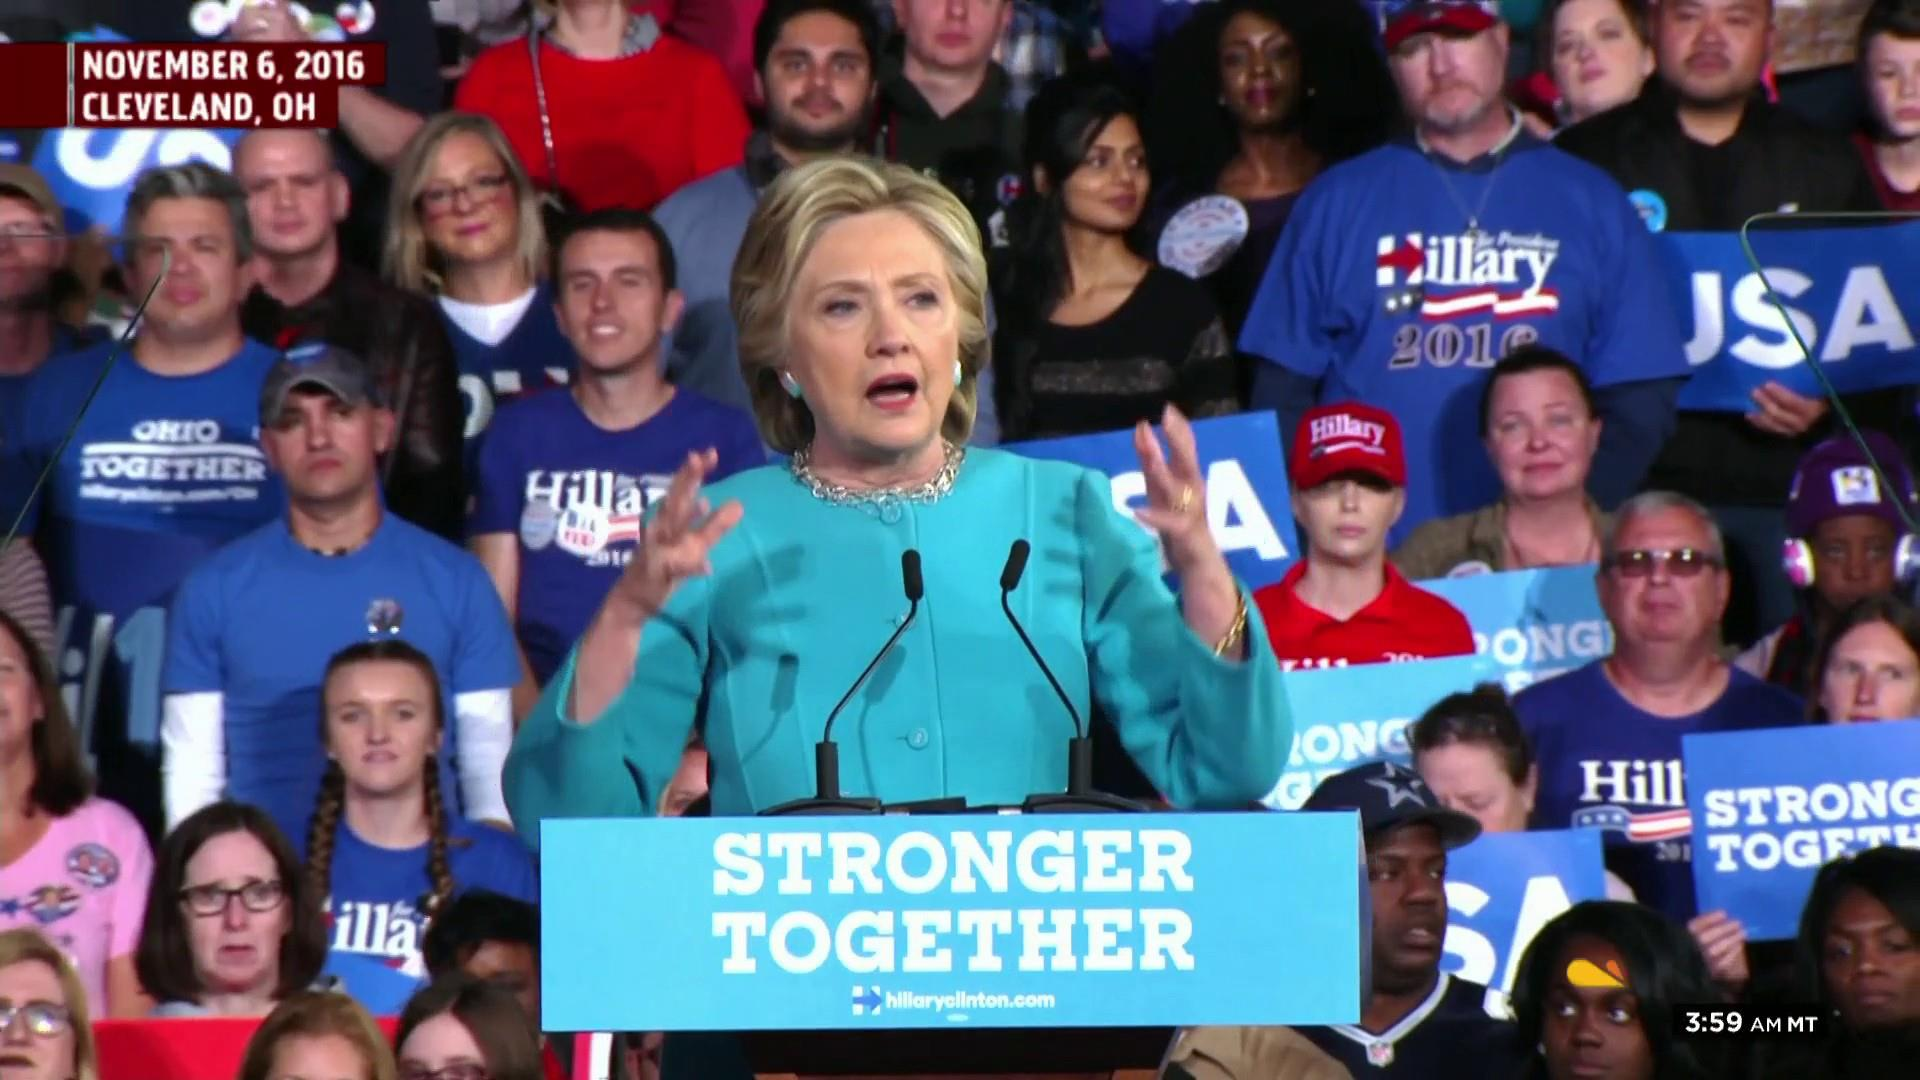 Trump seems to borrow Clinton's 'Stronger Together'